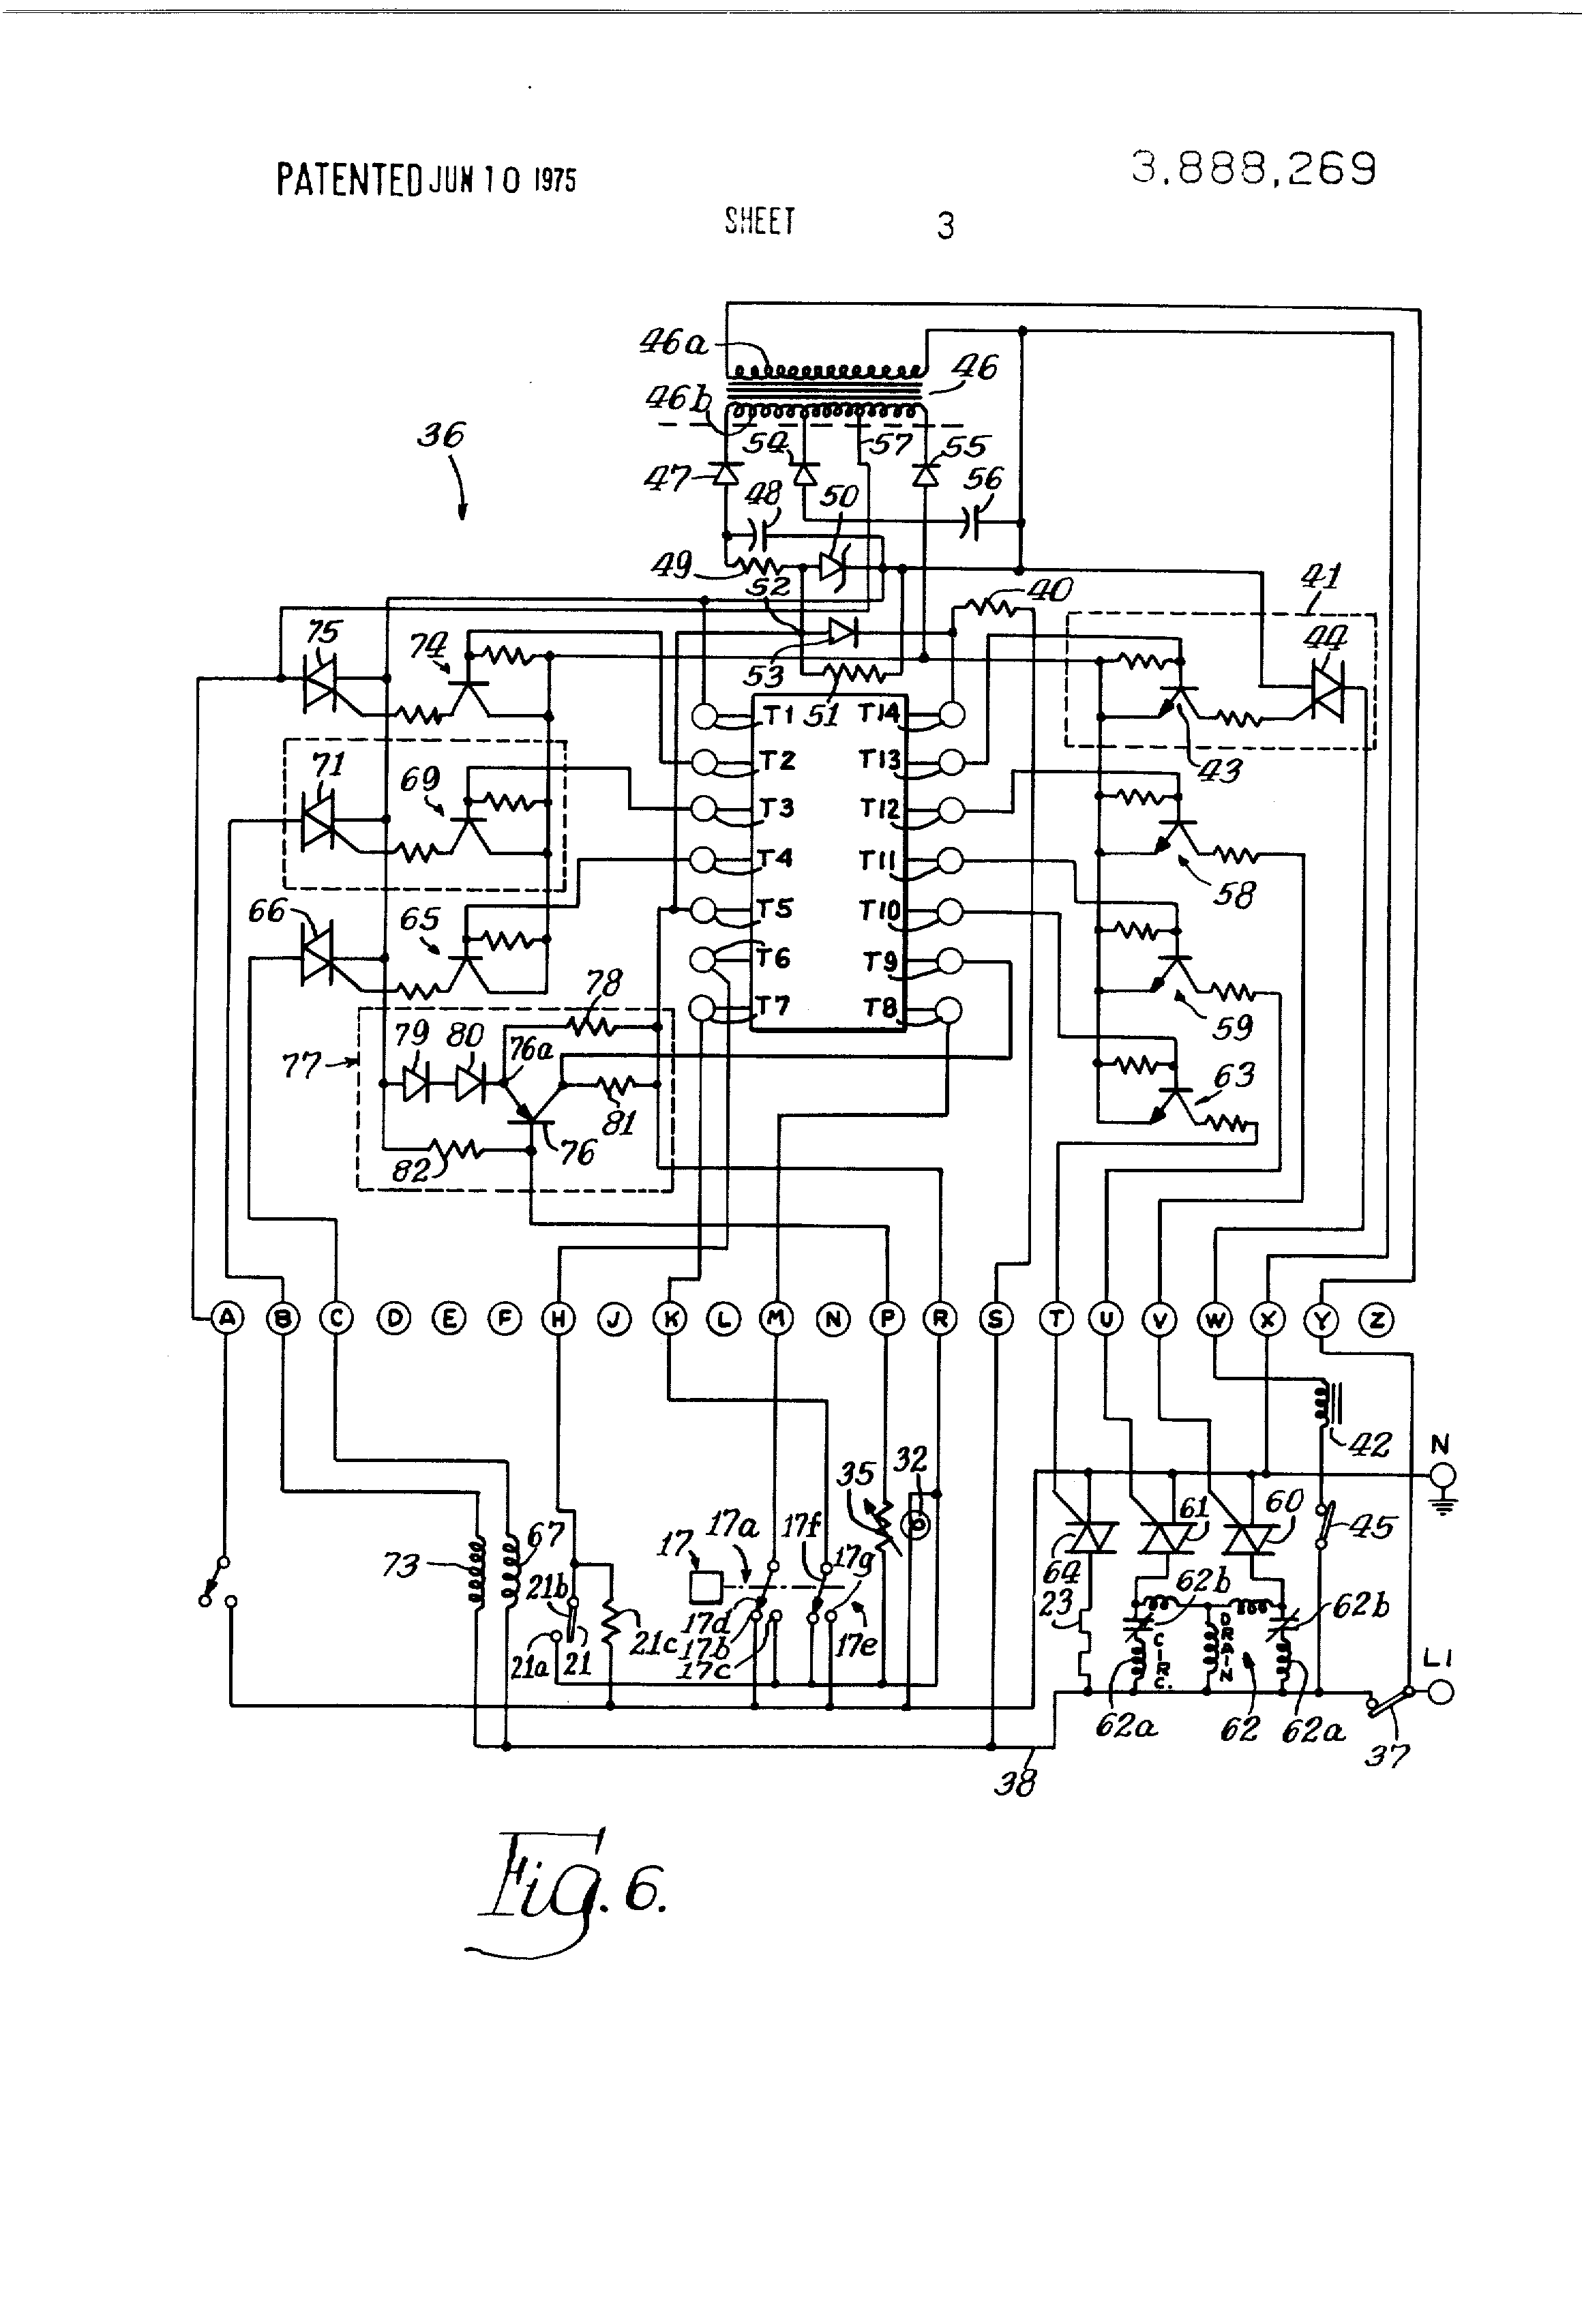 wiring diagram siemens washing machine wiring patent us3888269 control system for dishwasher google patents on wiring diagram siemens washing machine